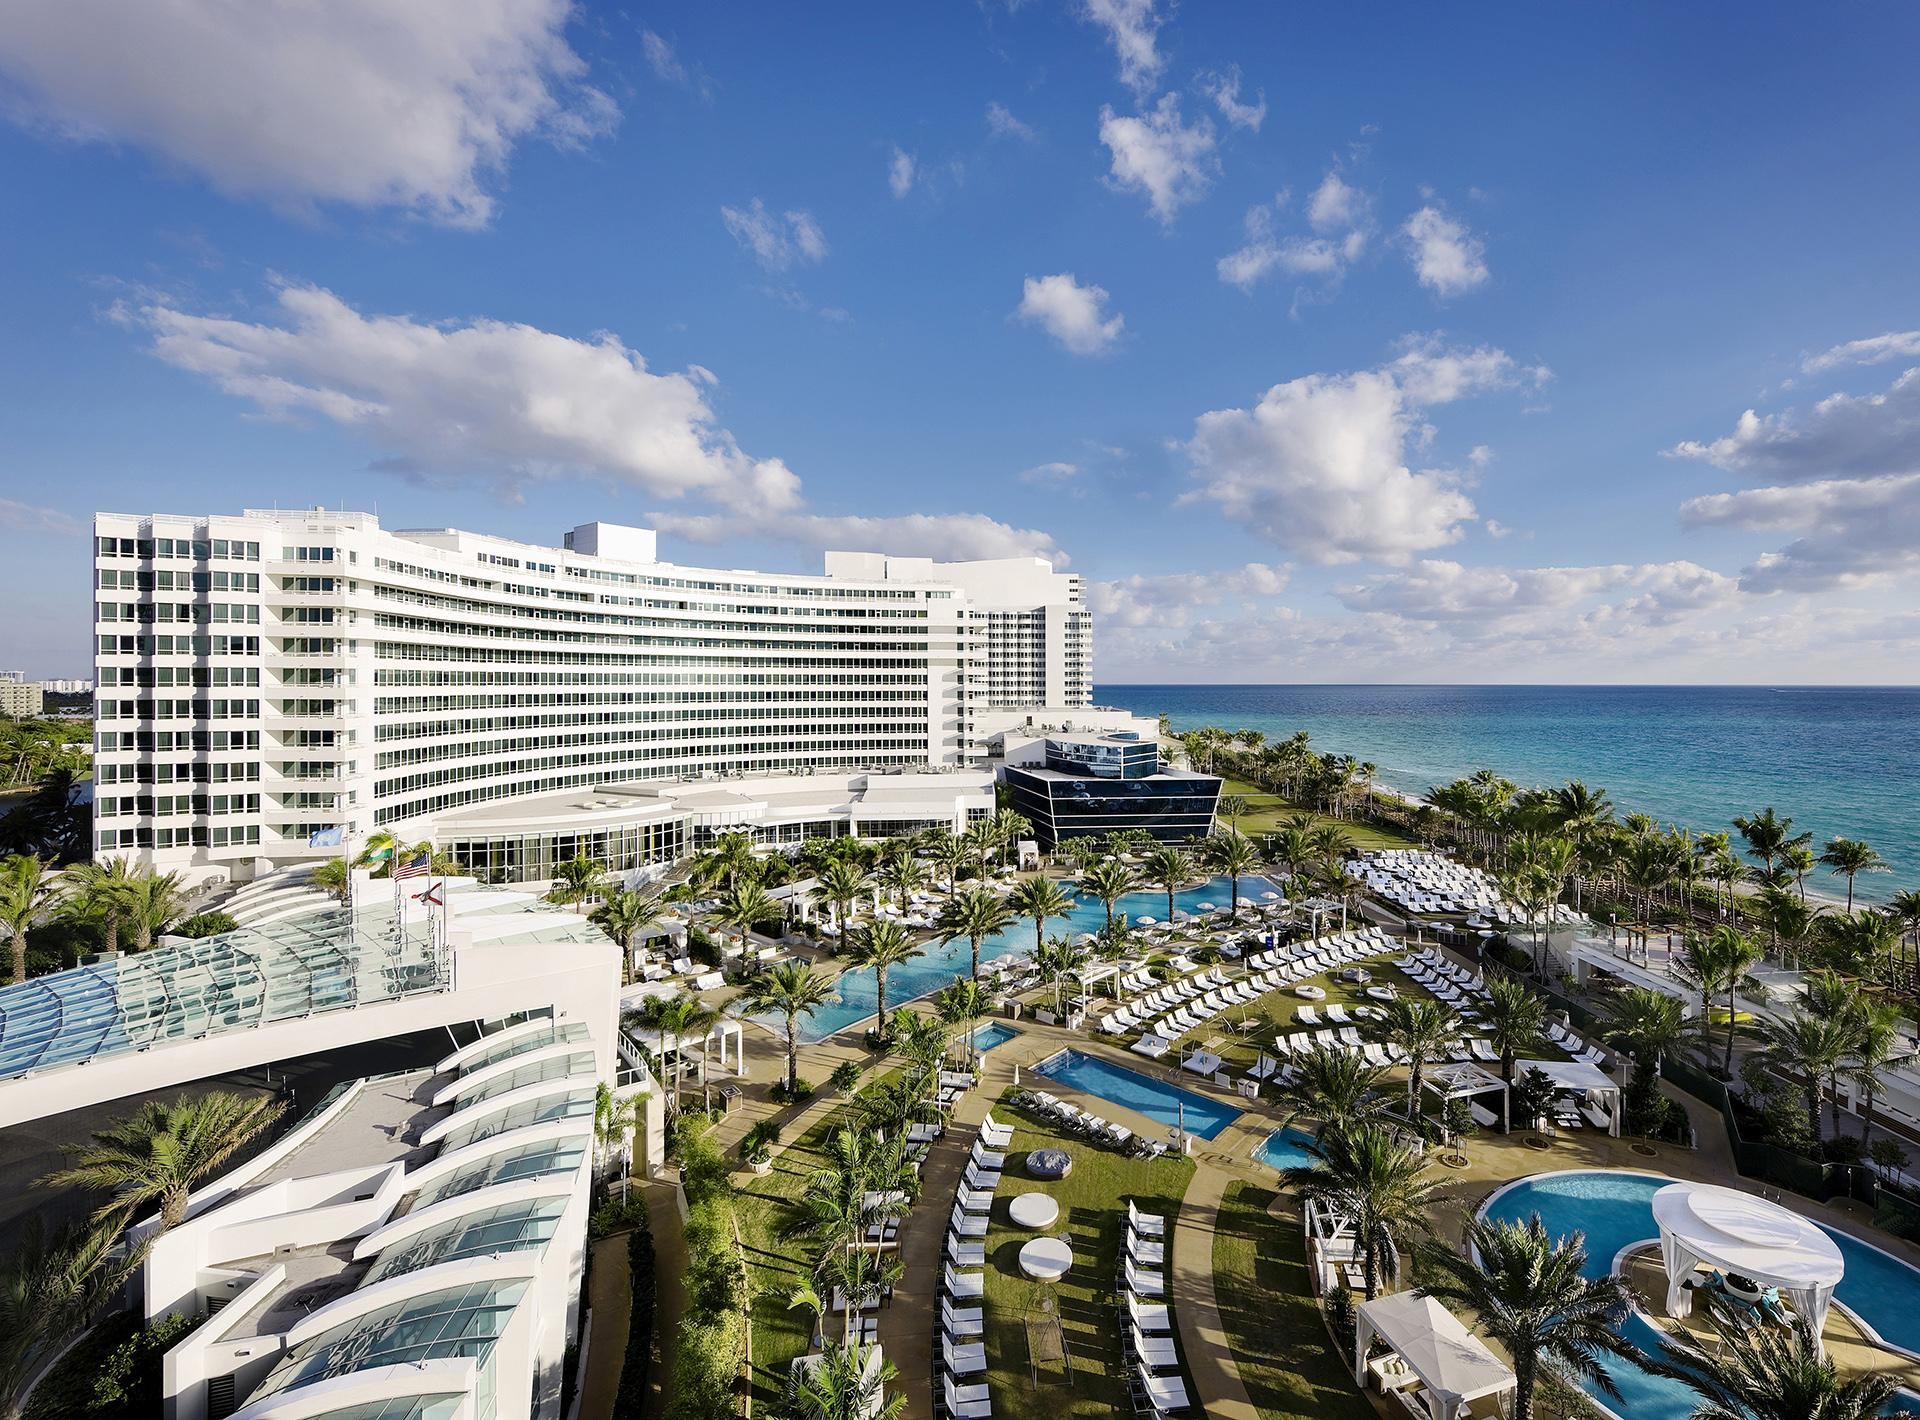 Stand in Spotlight at Fontainebleau Miami Beach